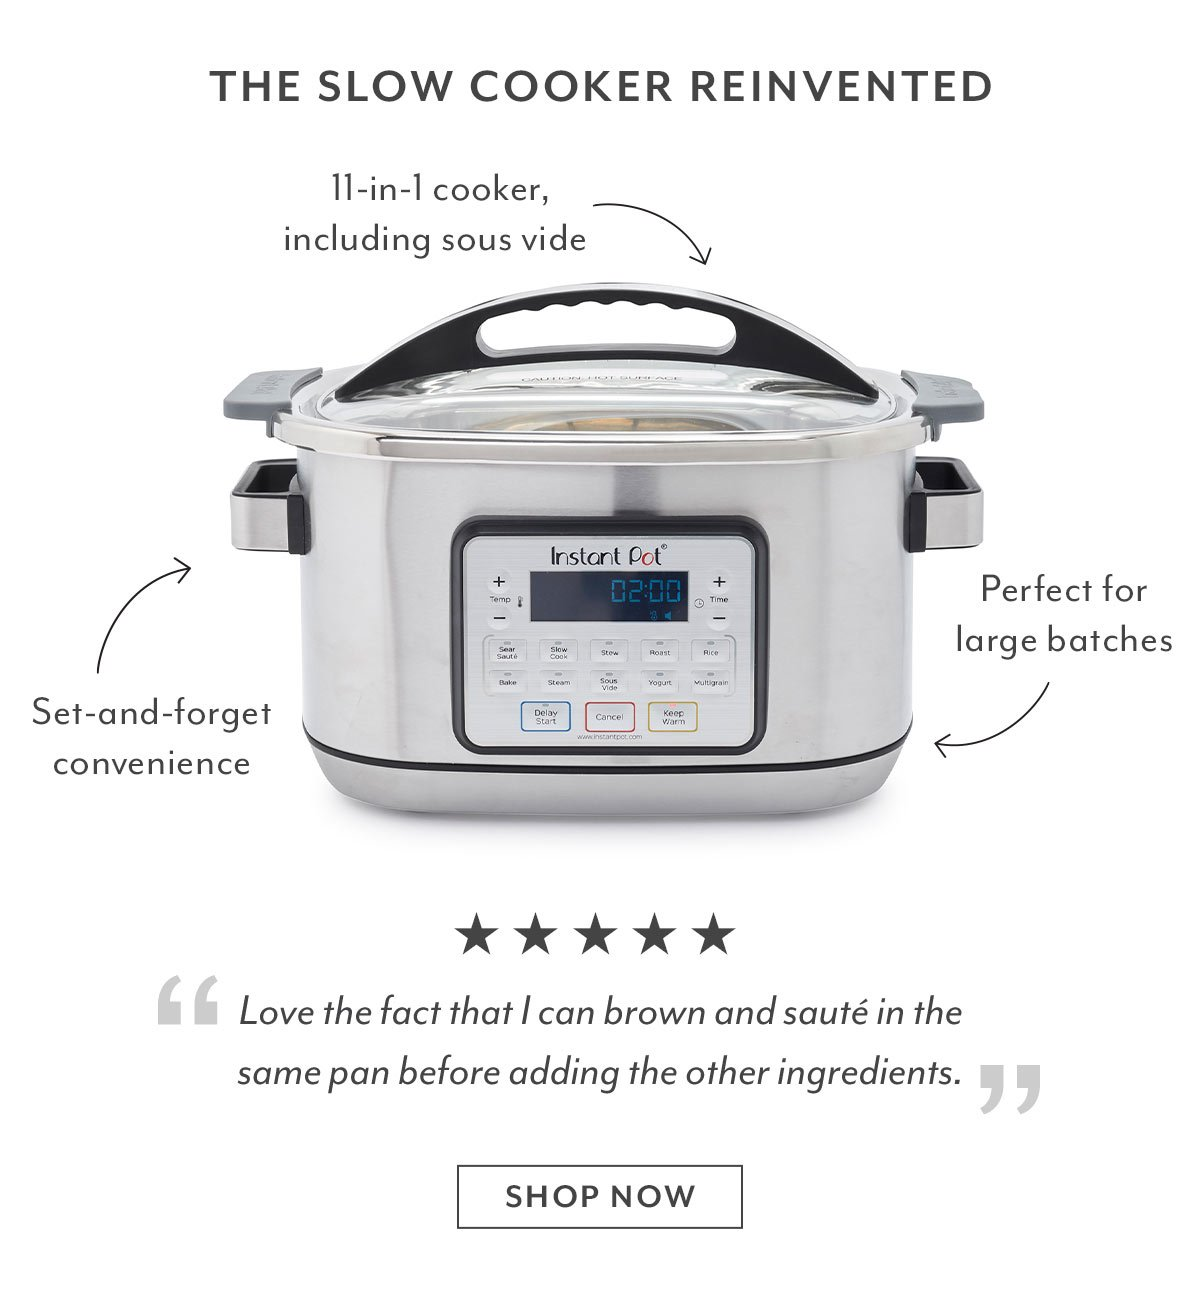 The Slow Cooker Reinvented